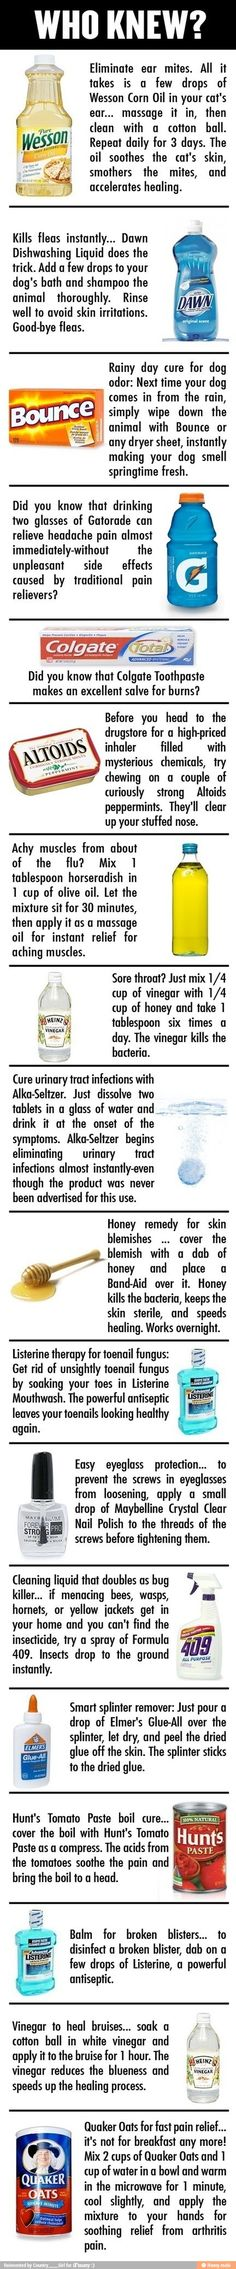 Home remedies - love this!